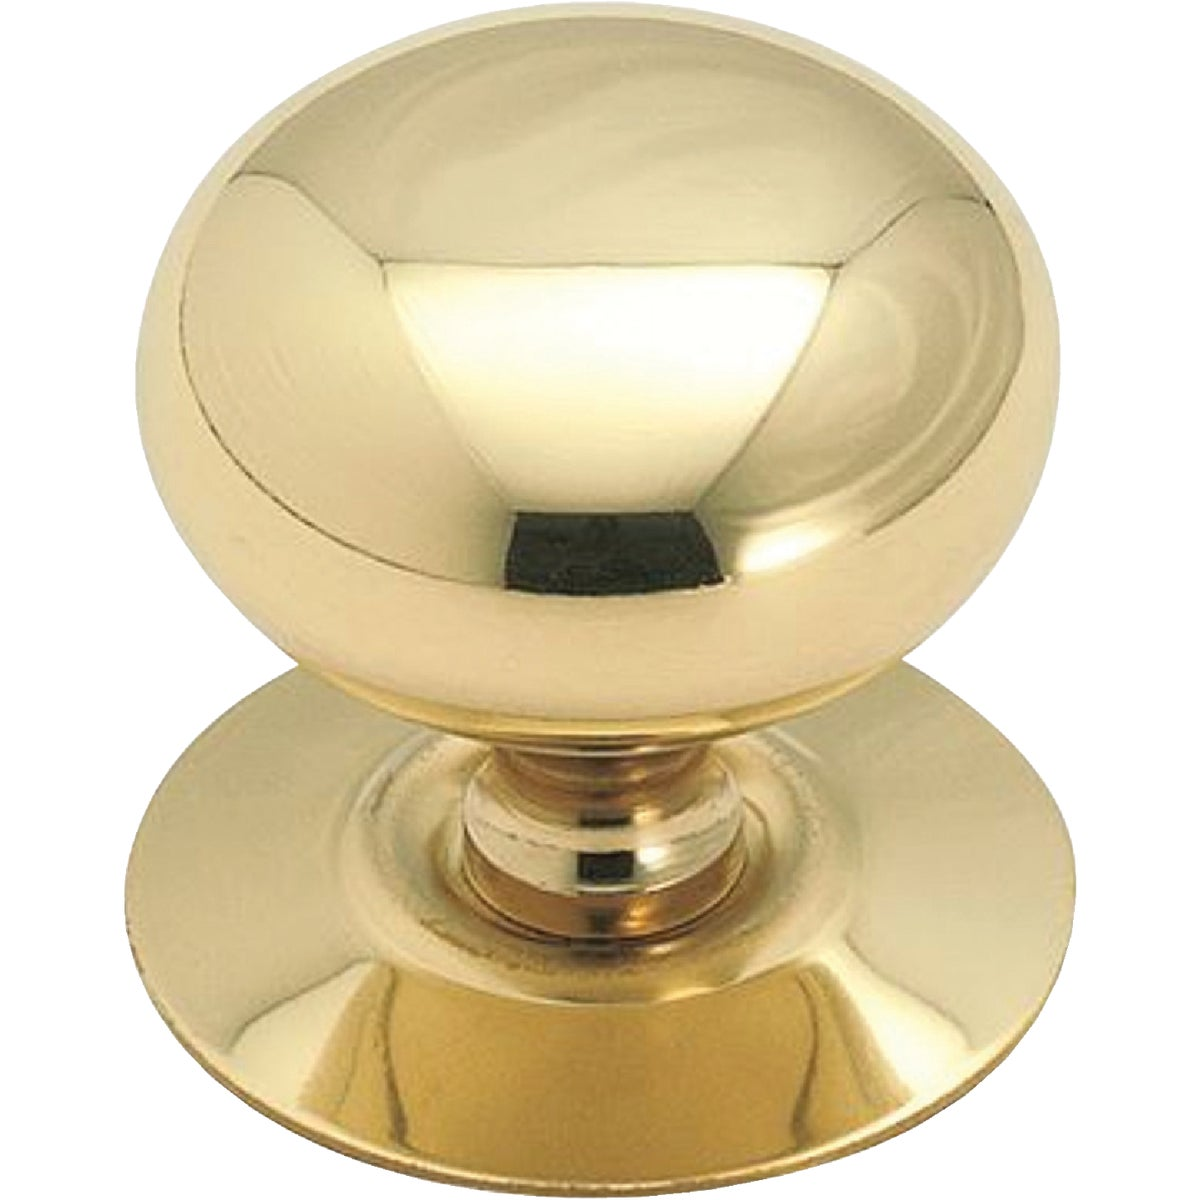 "1-1/2"" KNOB W/BACKPLATE - 544 by Amerock Corporation"